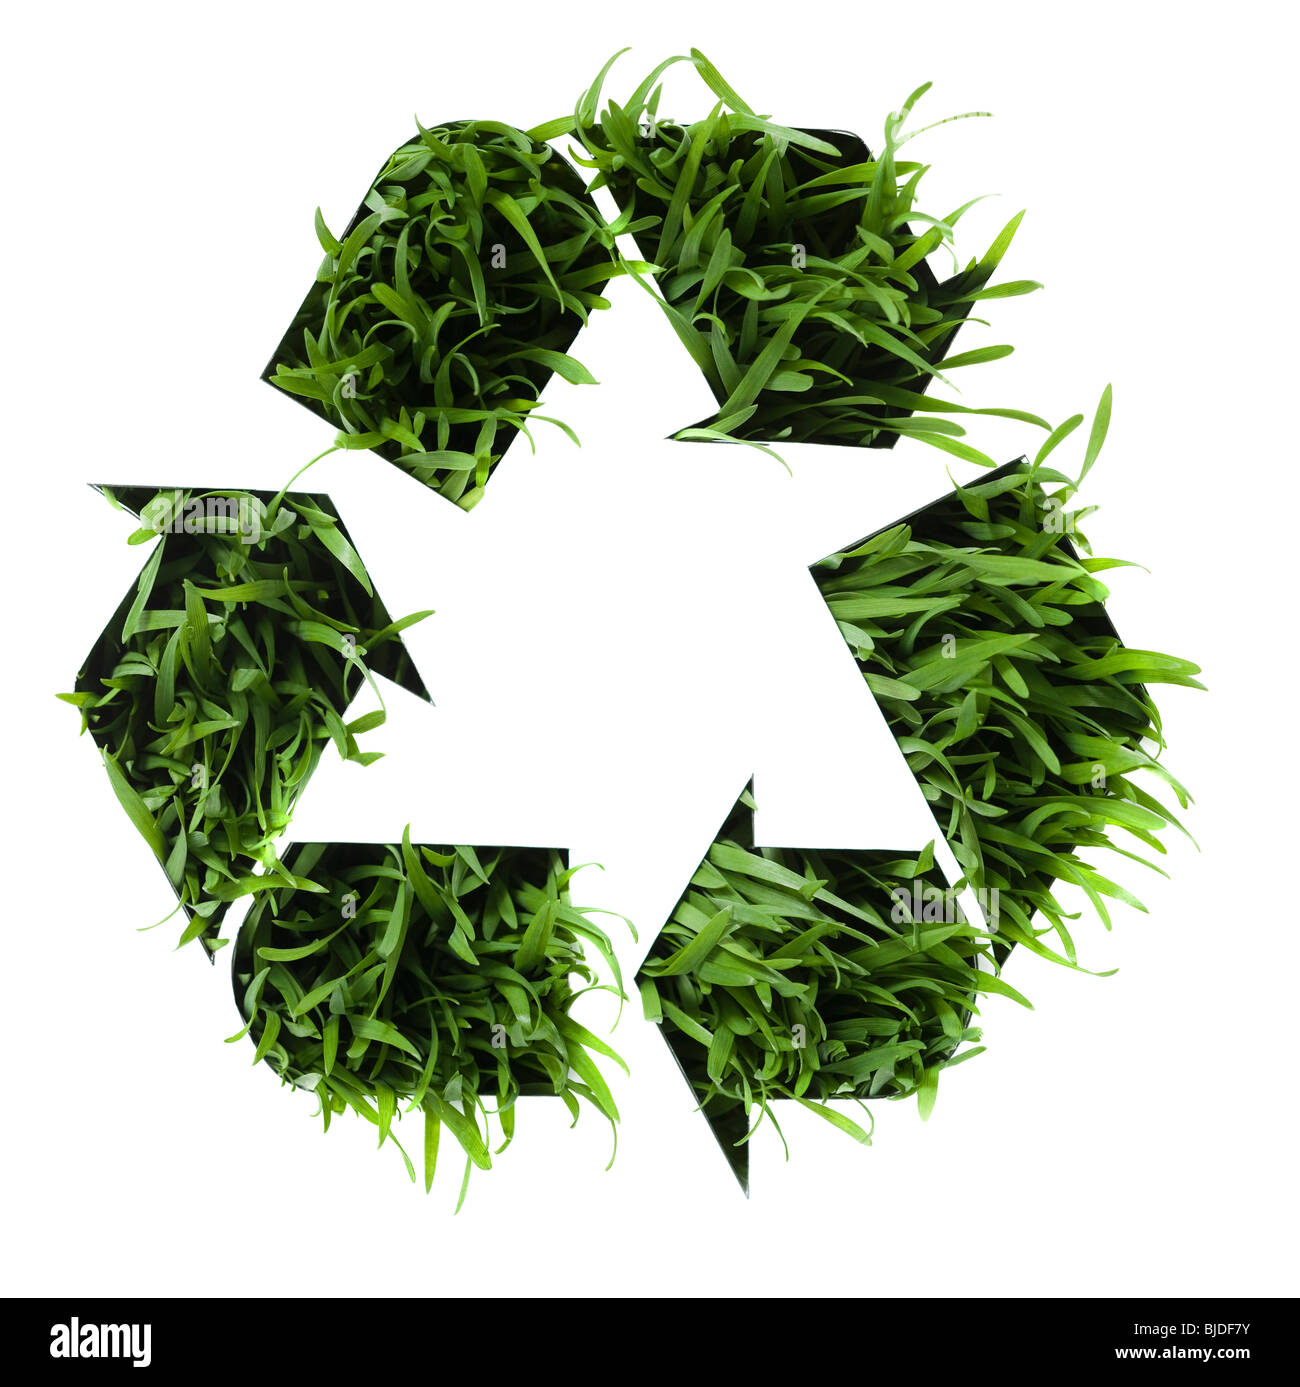 Recycling symbol with grass growing in it. - Stock Image